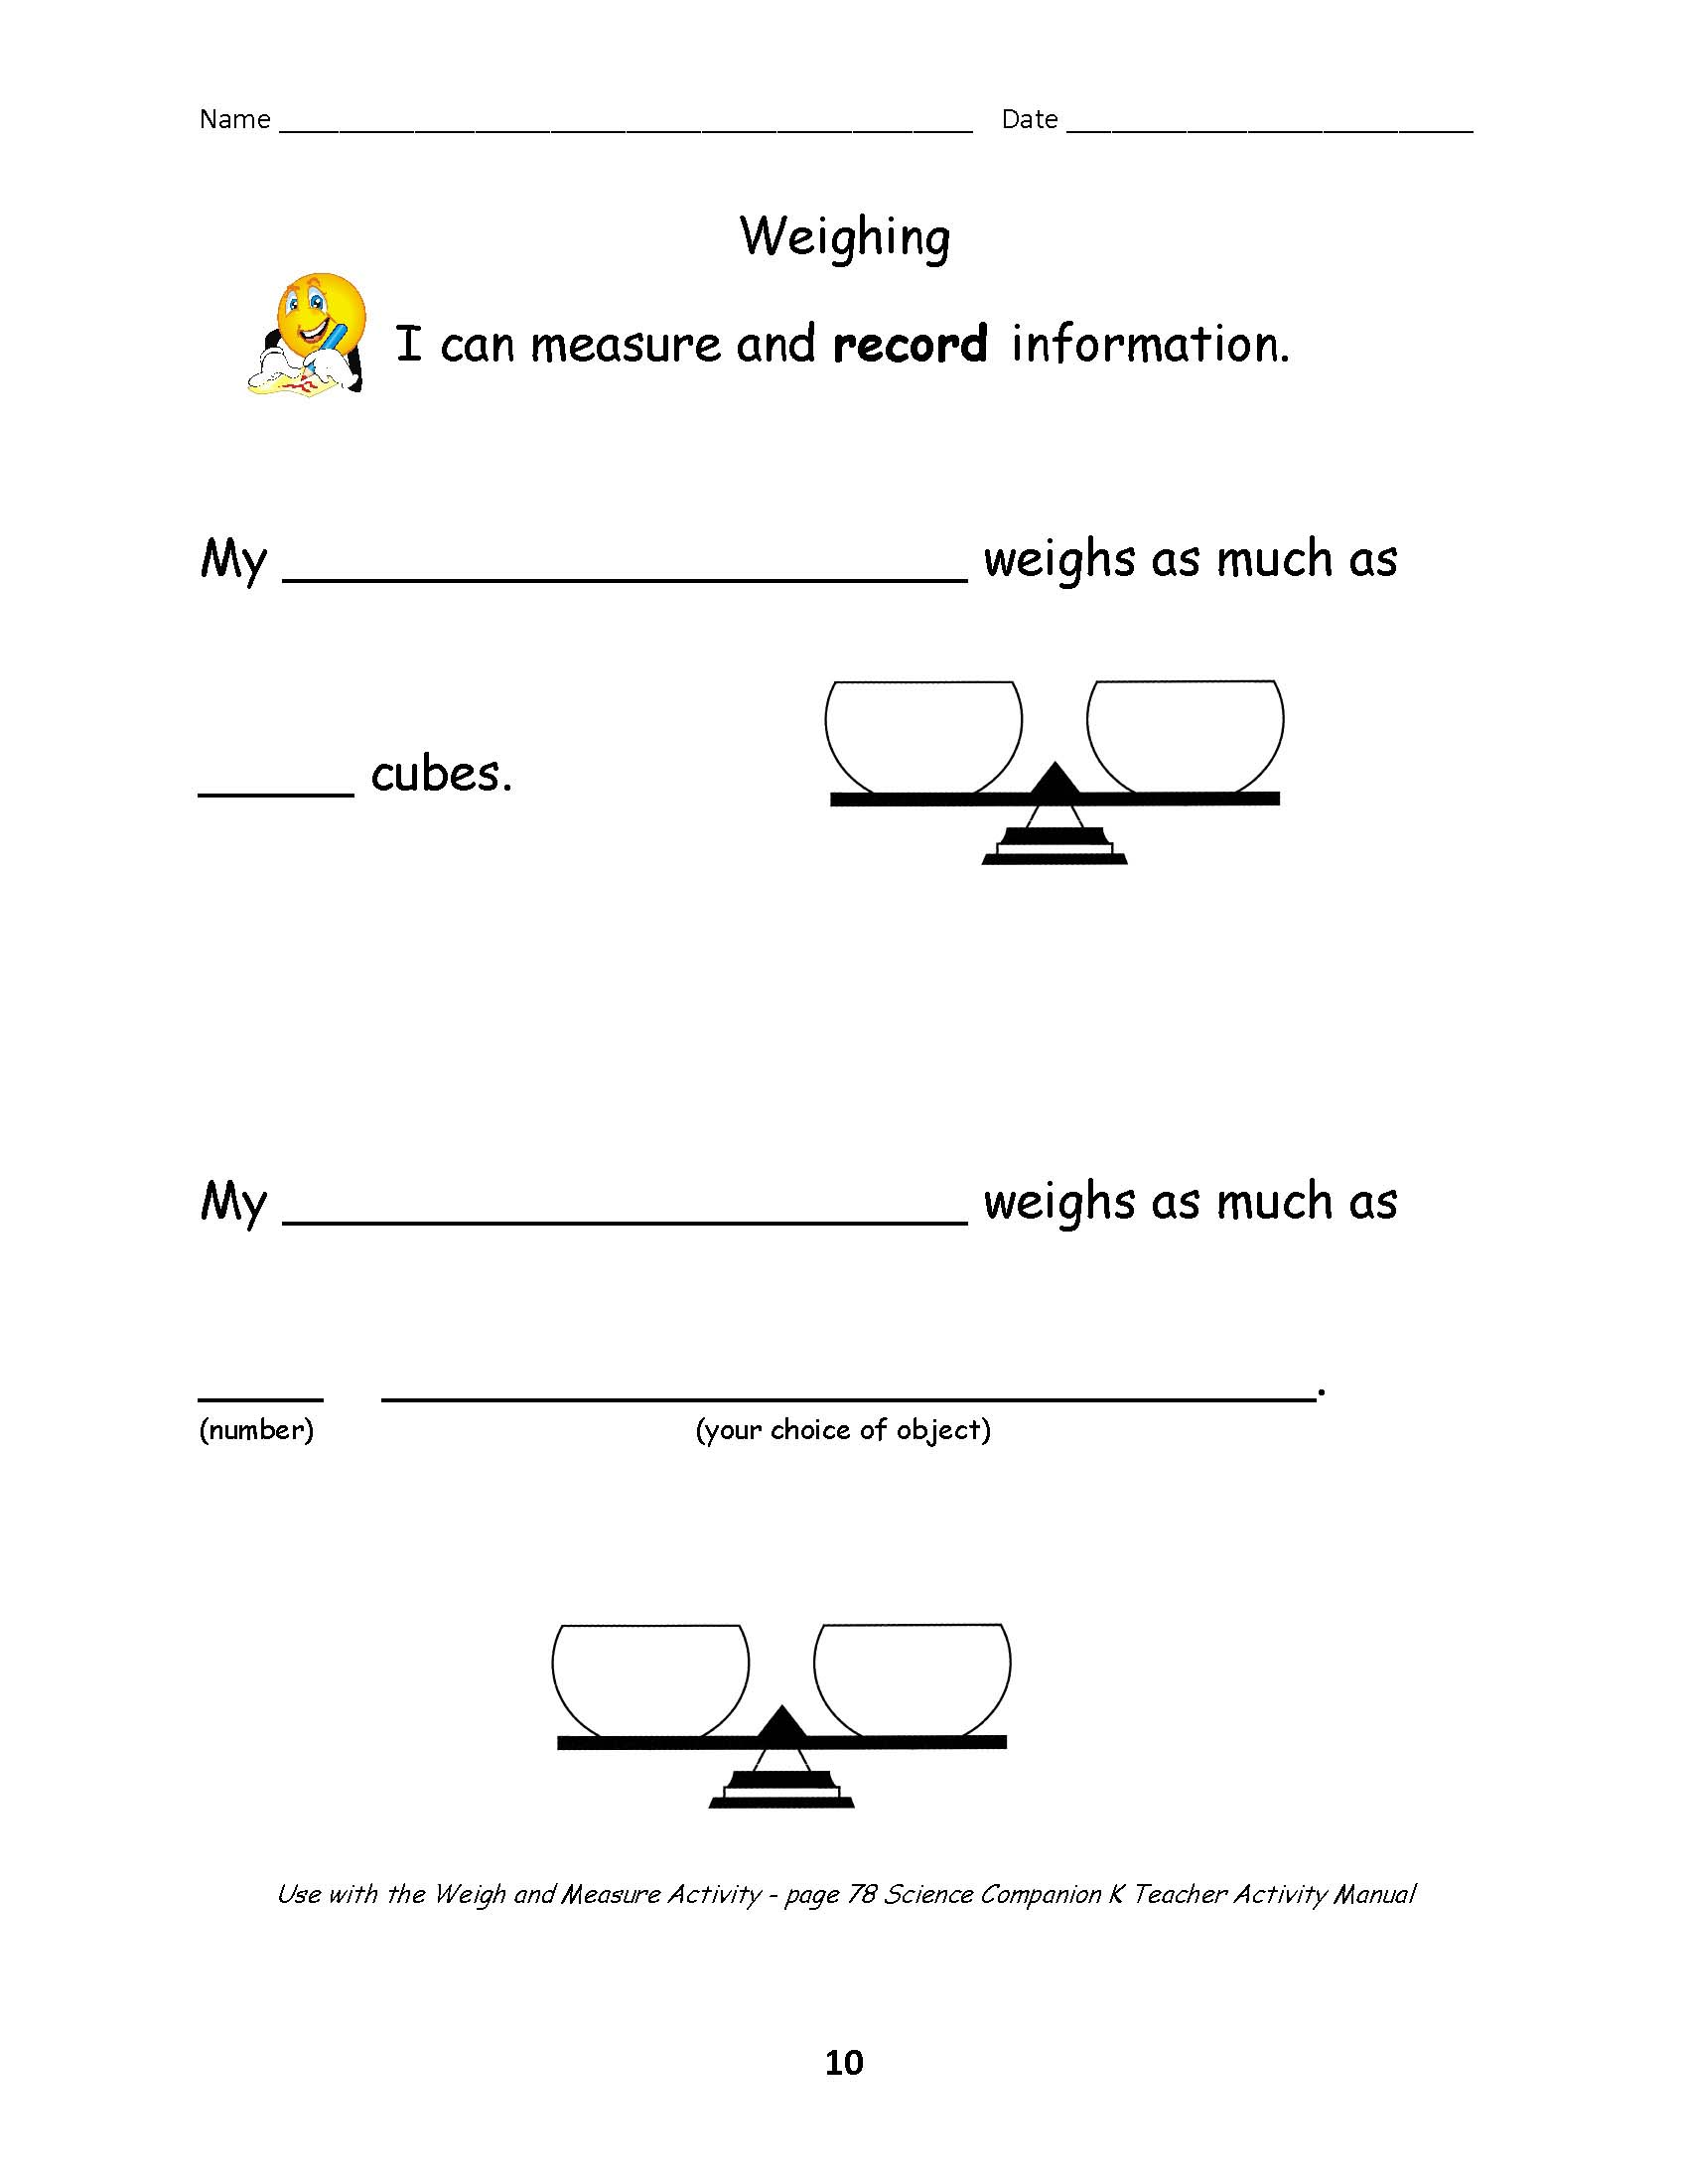 Science And Children Online Connections 4th Grade Worksheets Electric Circuit Checklist Measuring Worksheet Weighing